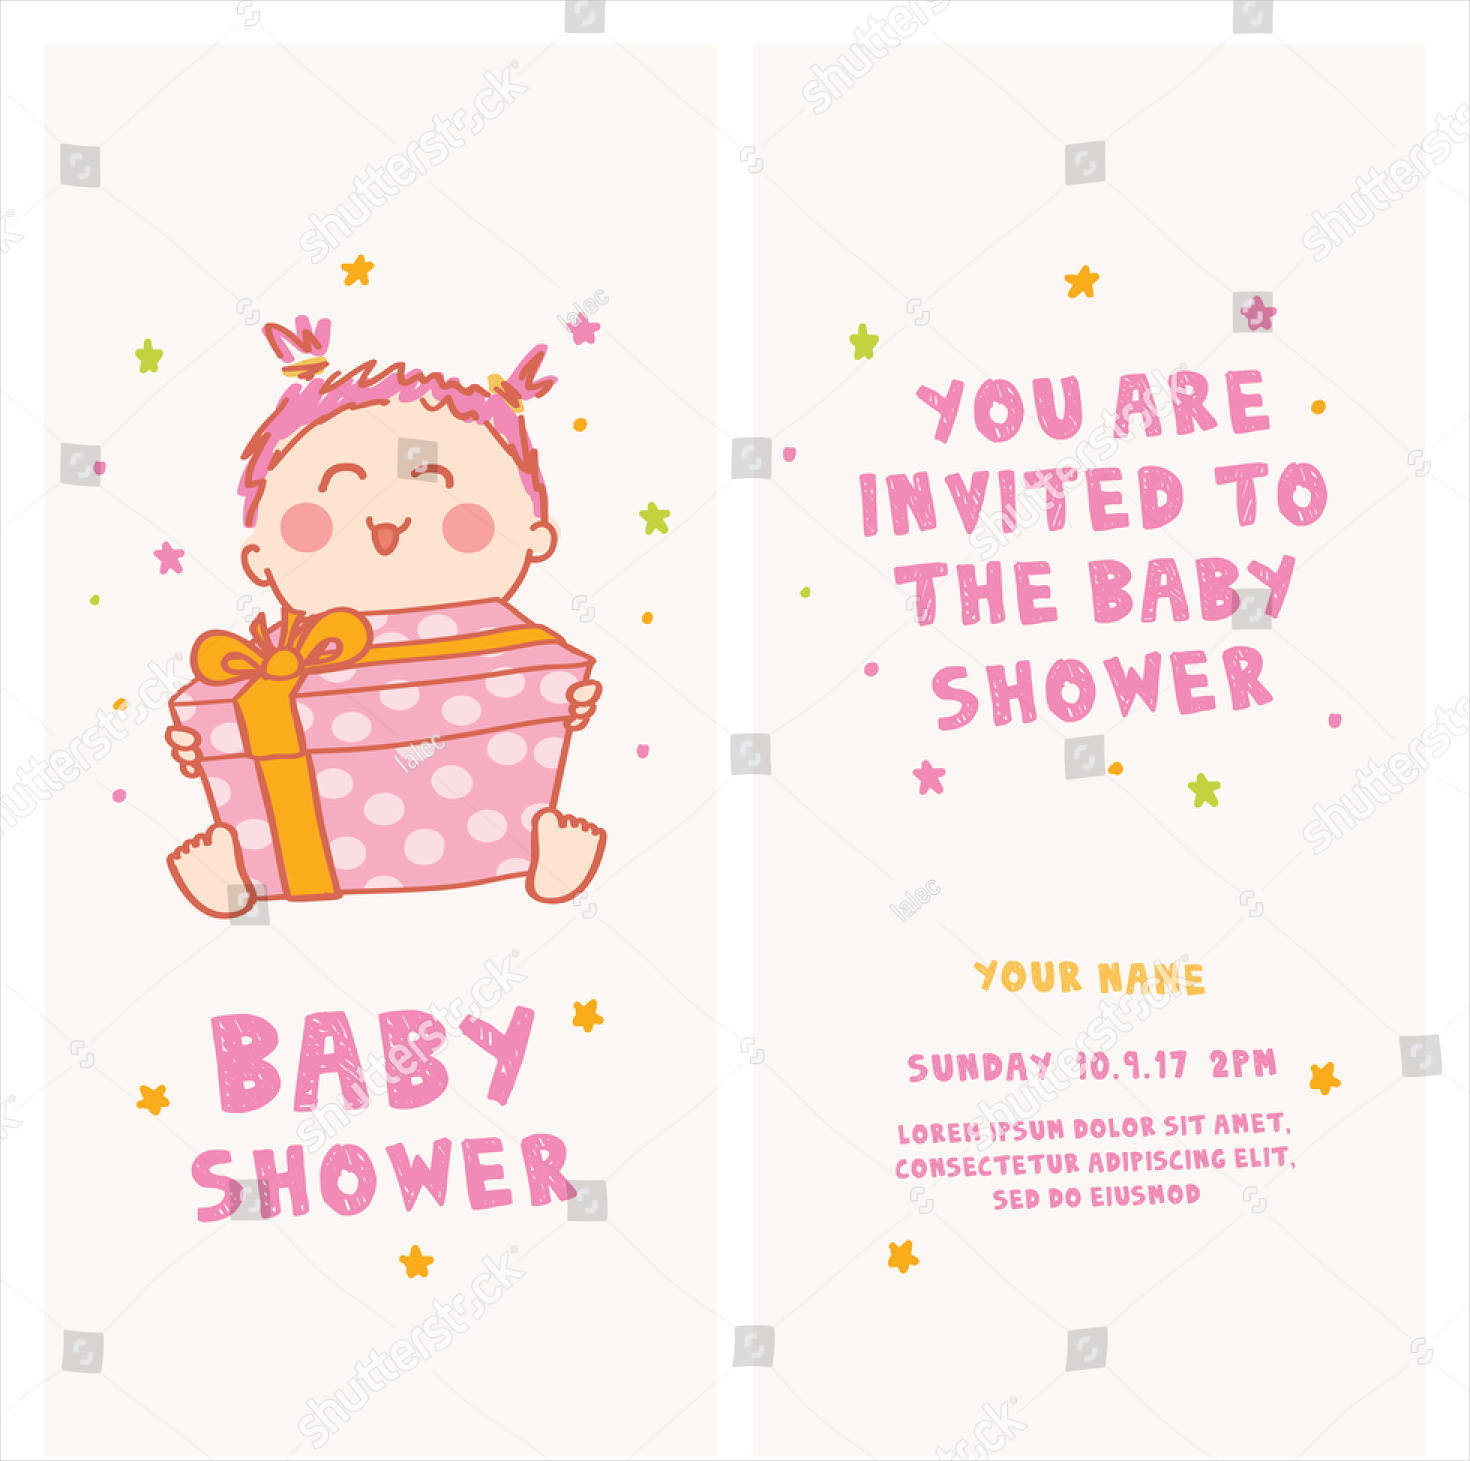 baby shower invitation cute girl